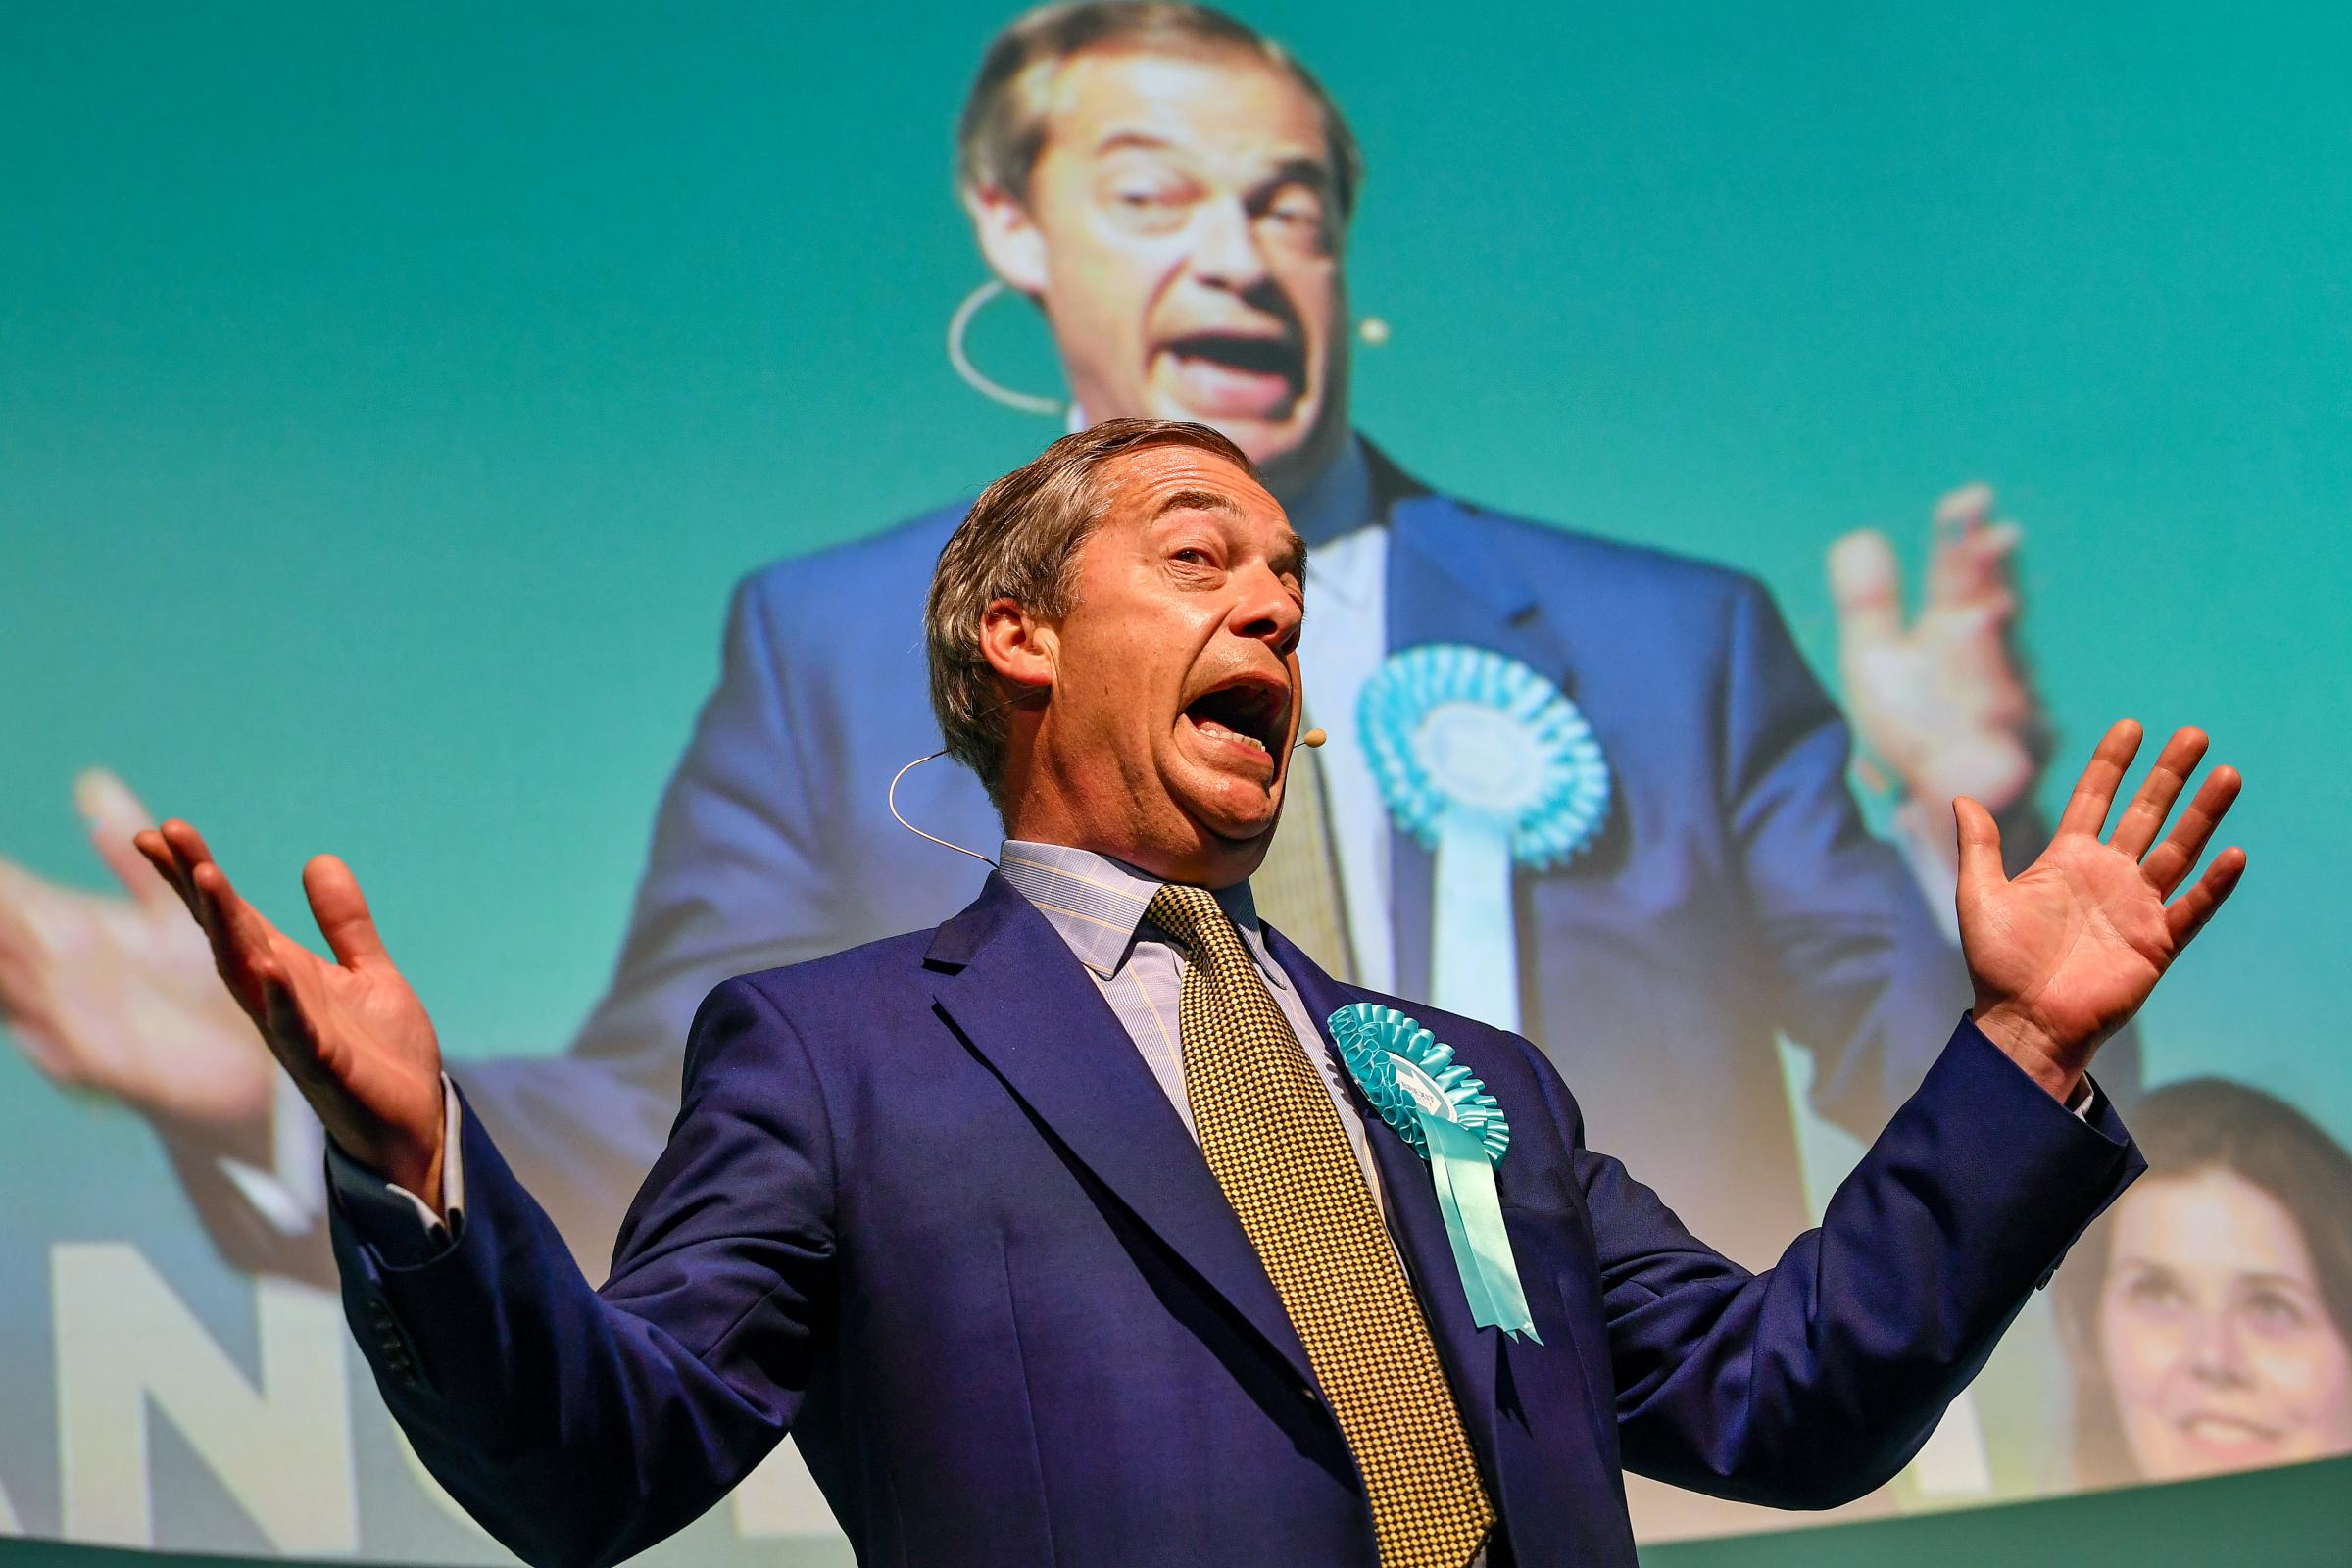 Nigel Farage cancels Brexit Party's only Scottish rally in Dundee